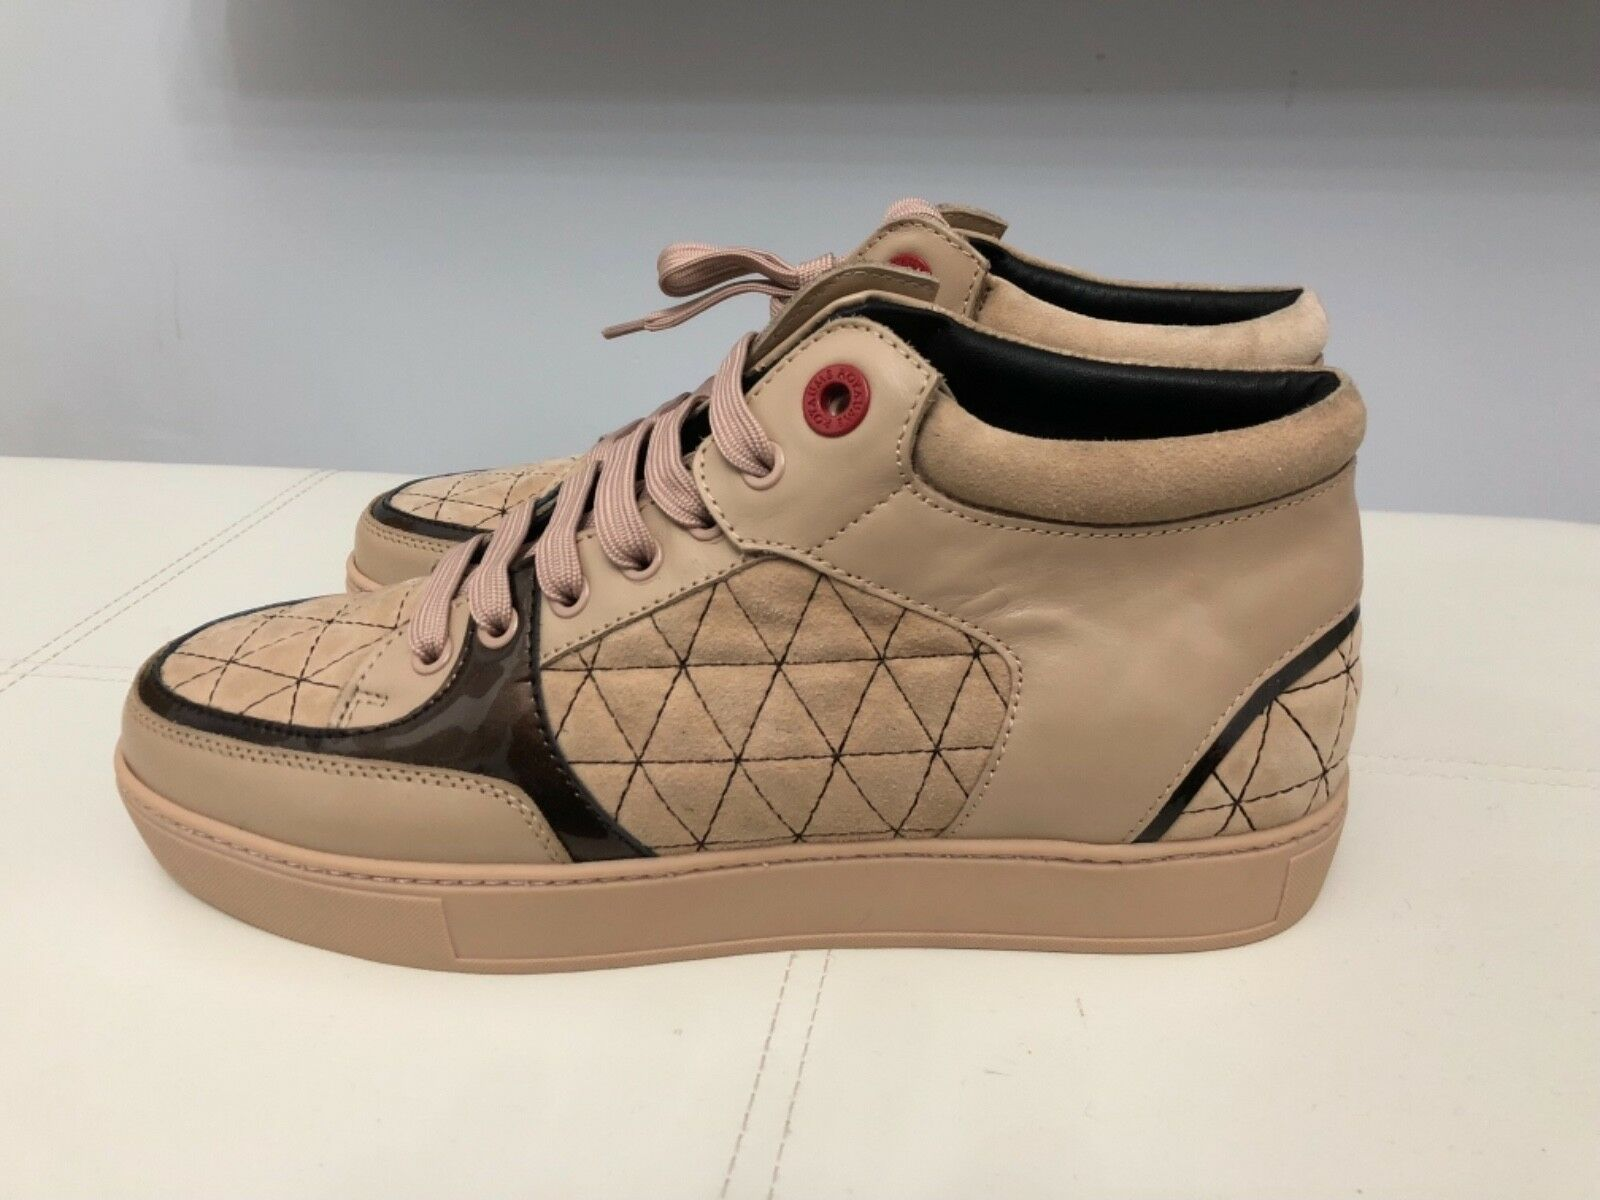 AUTHENTIC ROYAUMS STUNNING SNEAKERS MODEL MARION IN STUNNING ROYAUMS SUEDE LEATHER UK SIZE 8 11c295